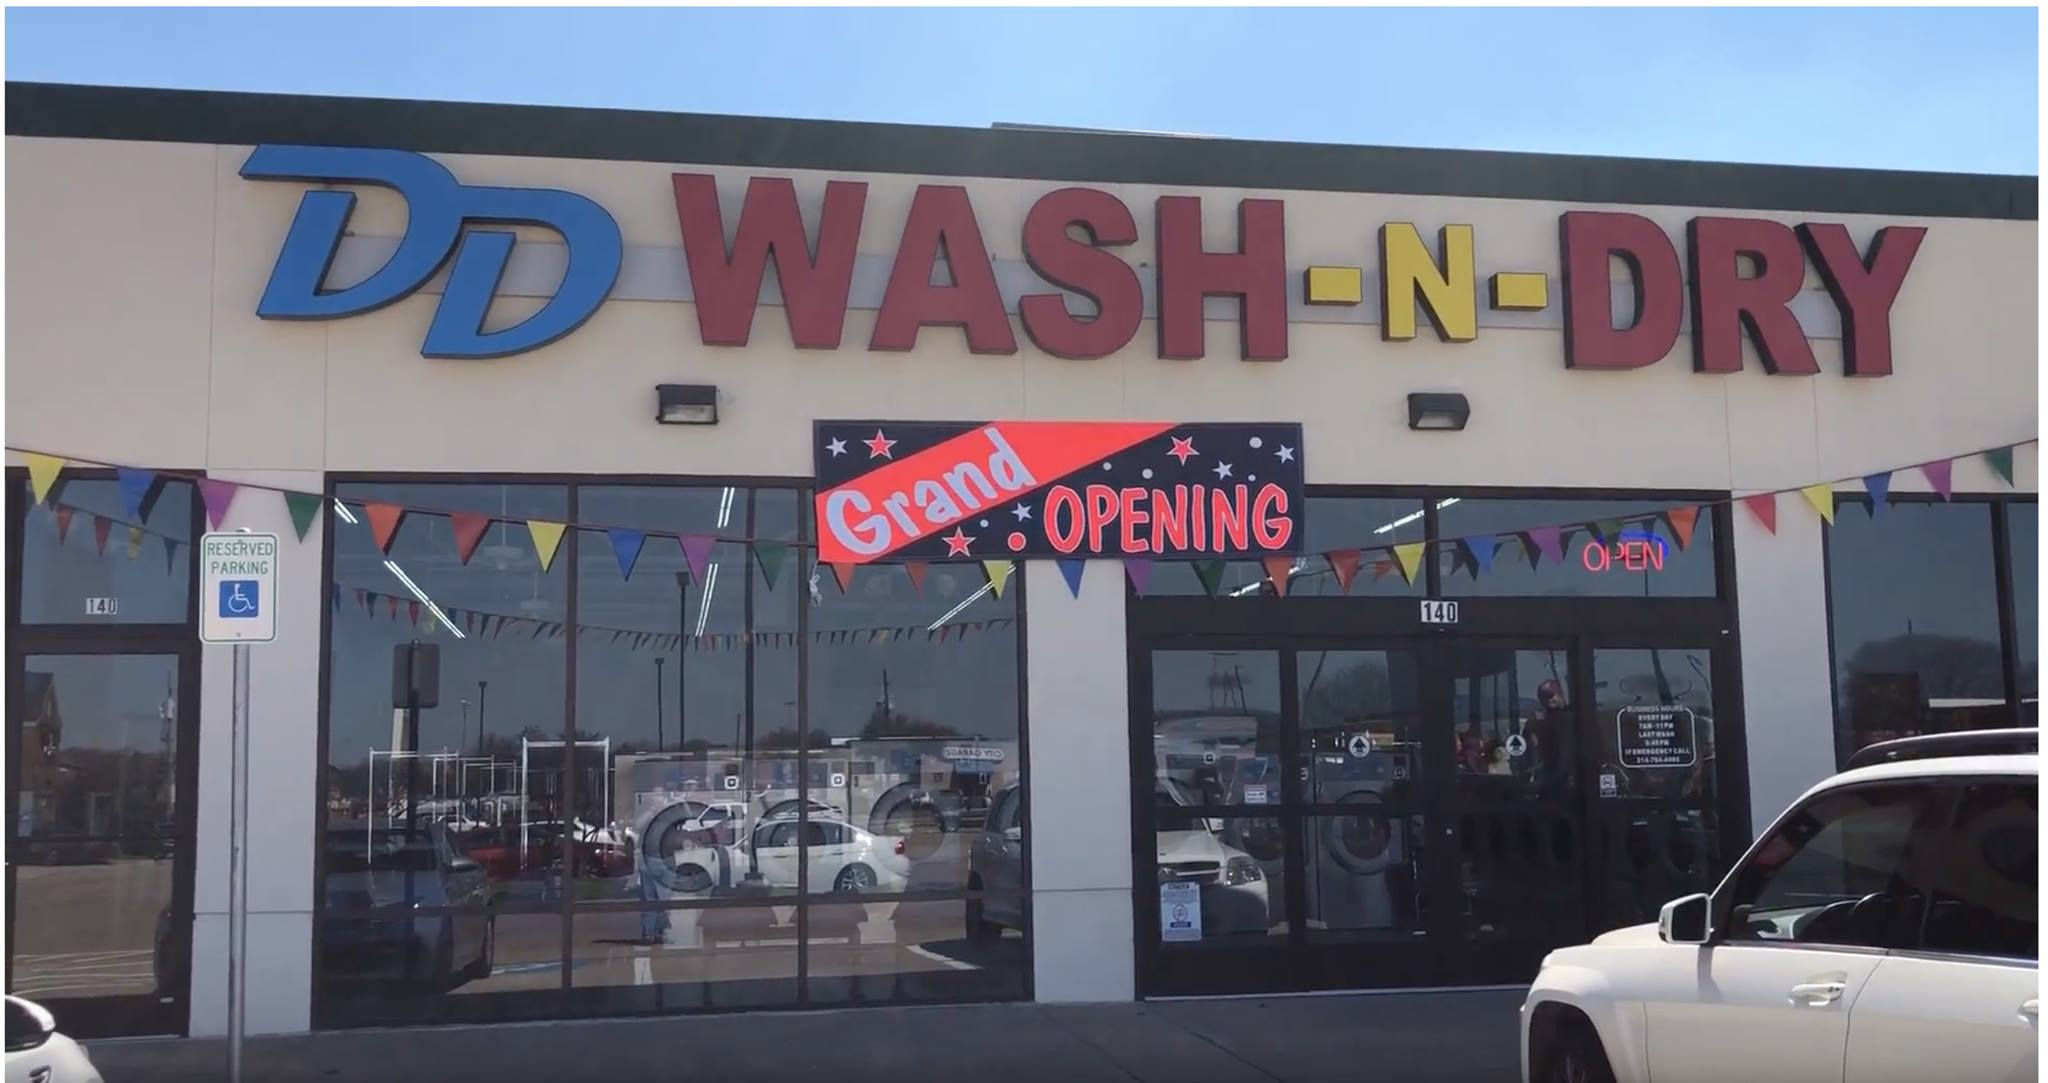 DD WASH-N-DRY - Dallas Logo